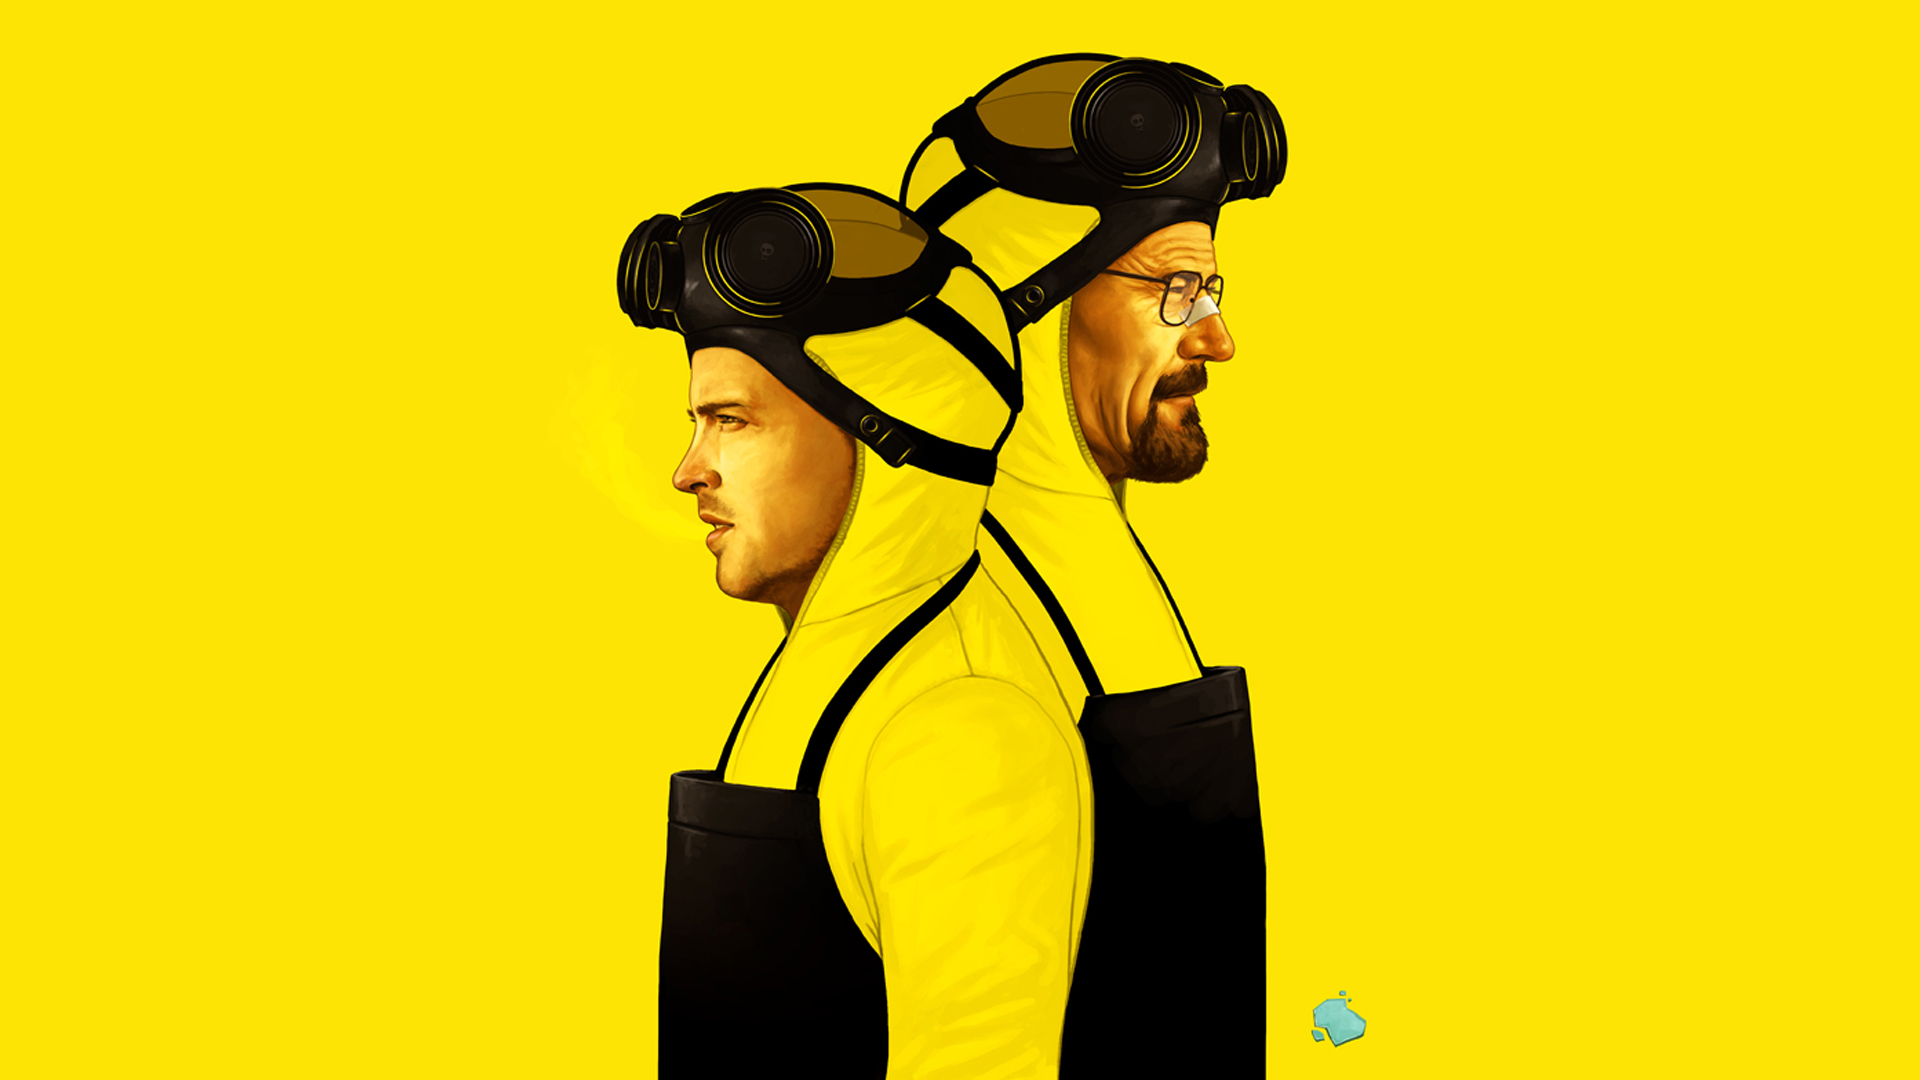 TV Show - Breaking Bad  Wallpaper